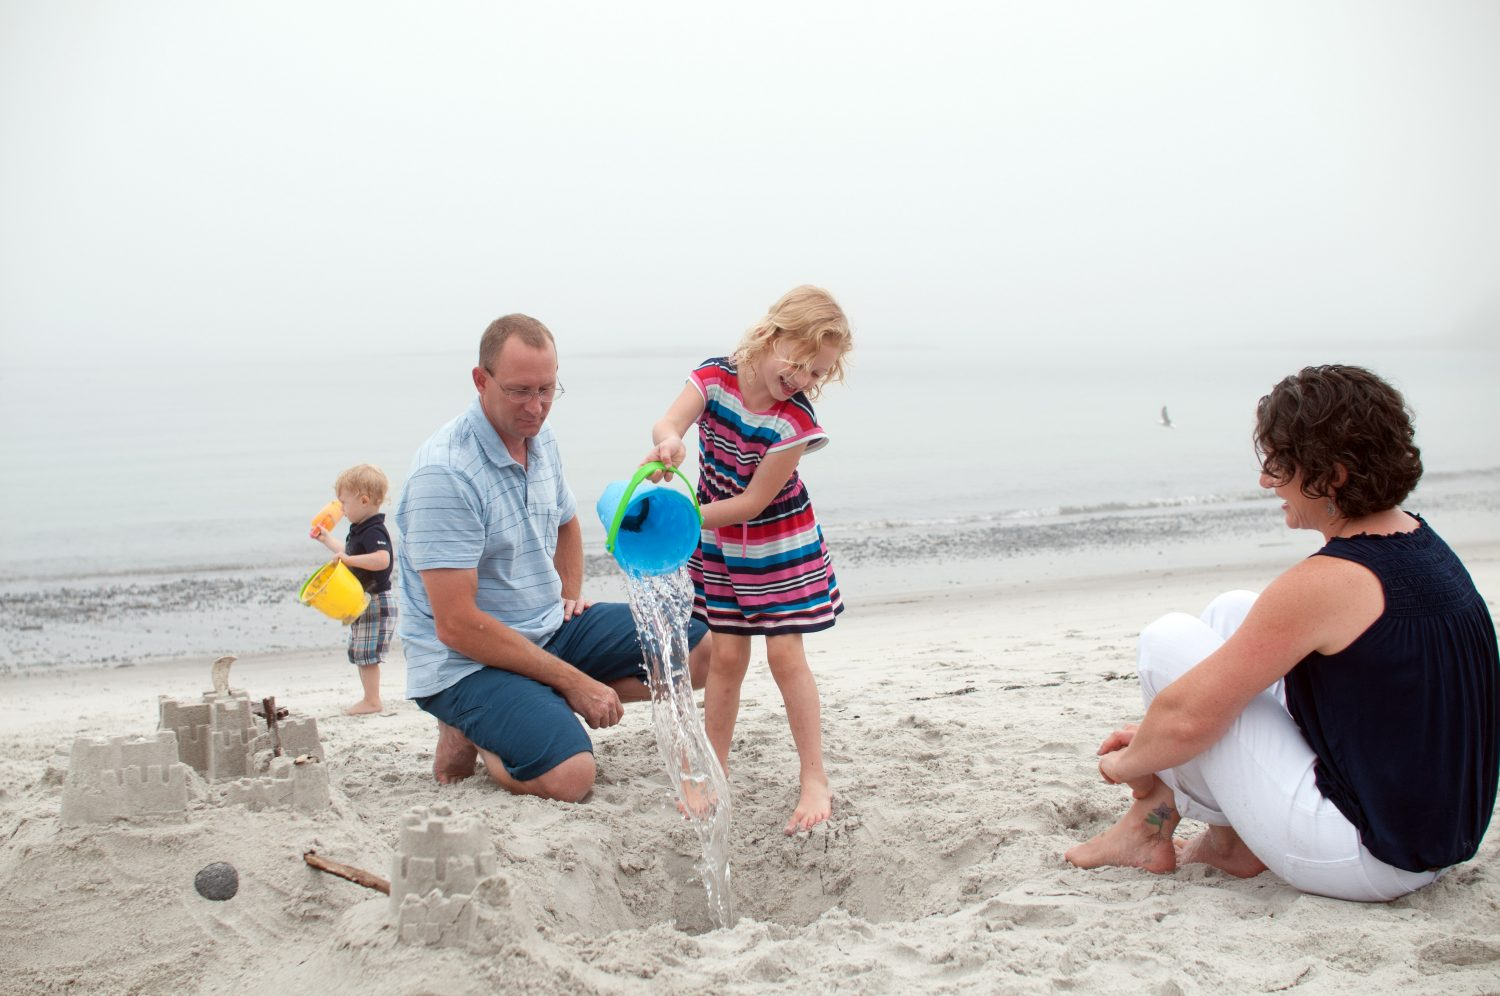 Little_girl_pouring_water_into_hole_in_sand